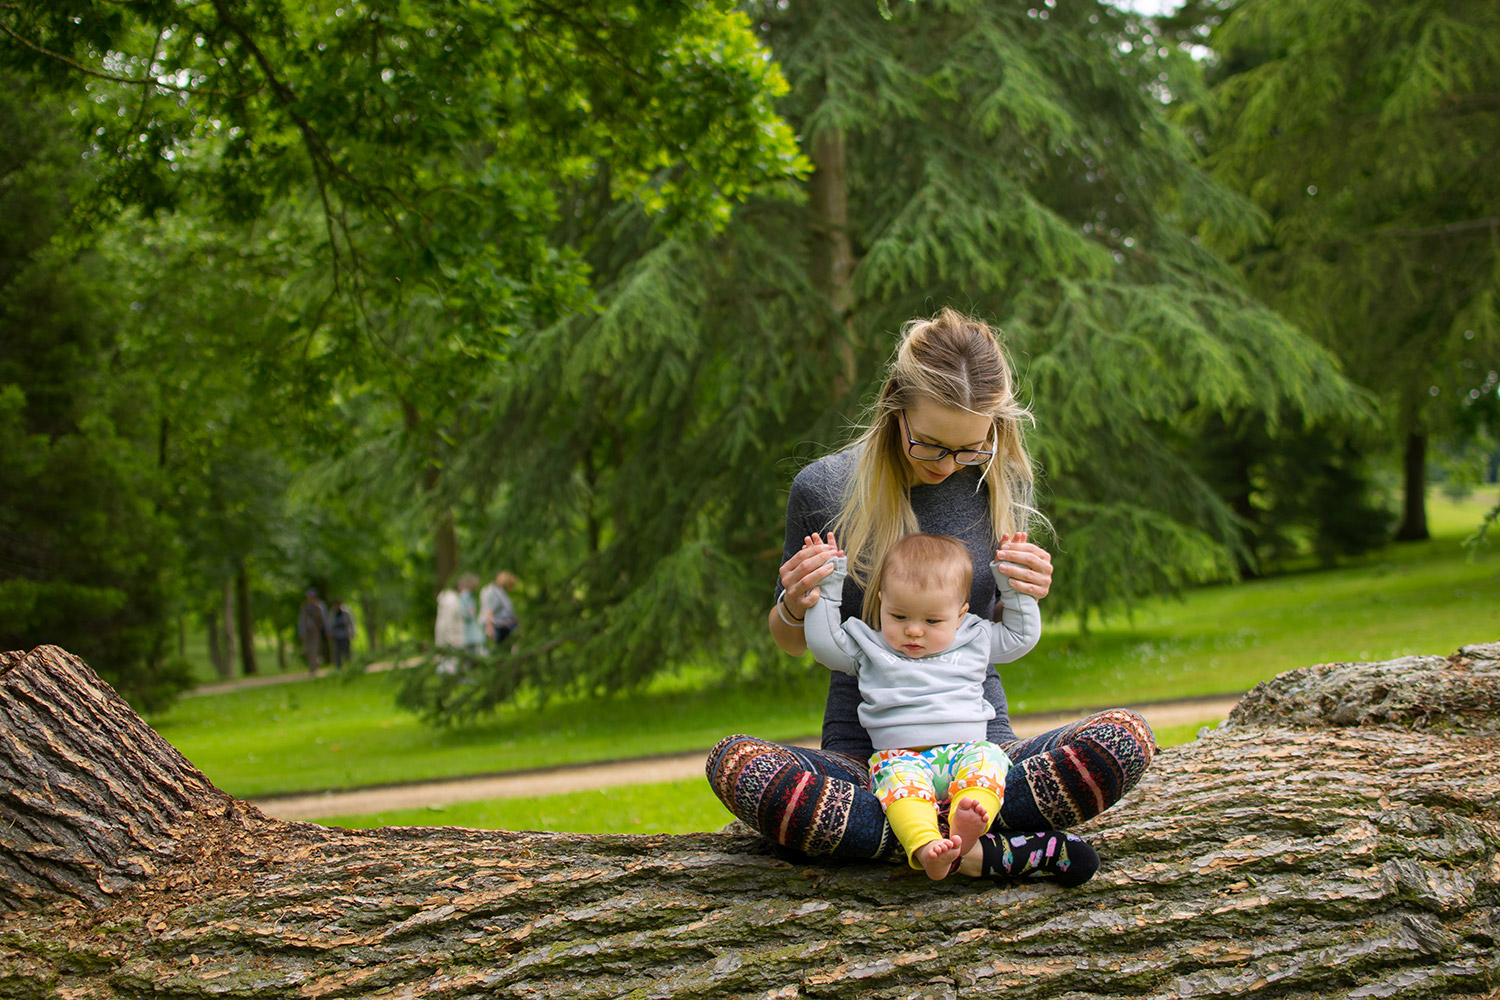 'Time to make a big decision' {The Ordinary Moments 21} - Mum and baby boy wearing Bob and Blossom 'brother' sweatshirt and Boys & Girls star rainbow leggings sitting together on log at Buscot Park, Oxford